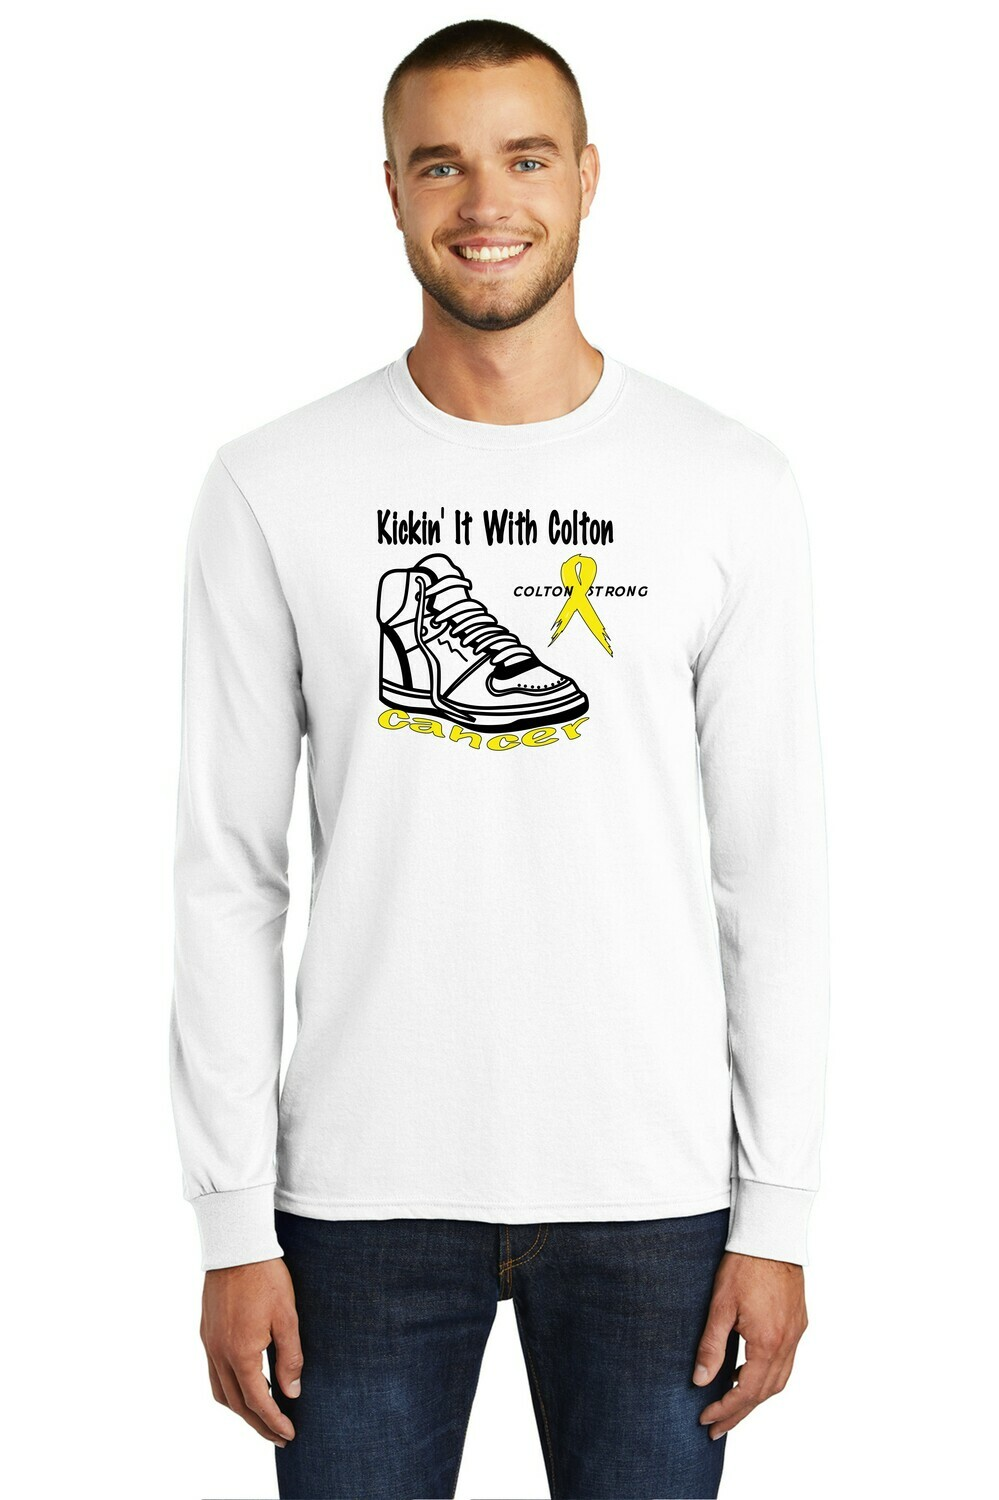 Kickin' It With Colton Long Sleeve T-Shirt